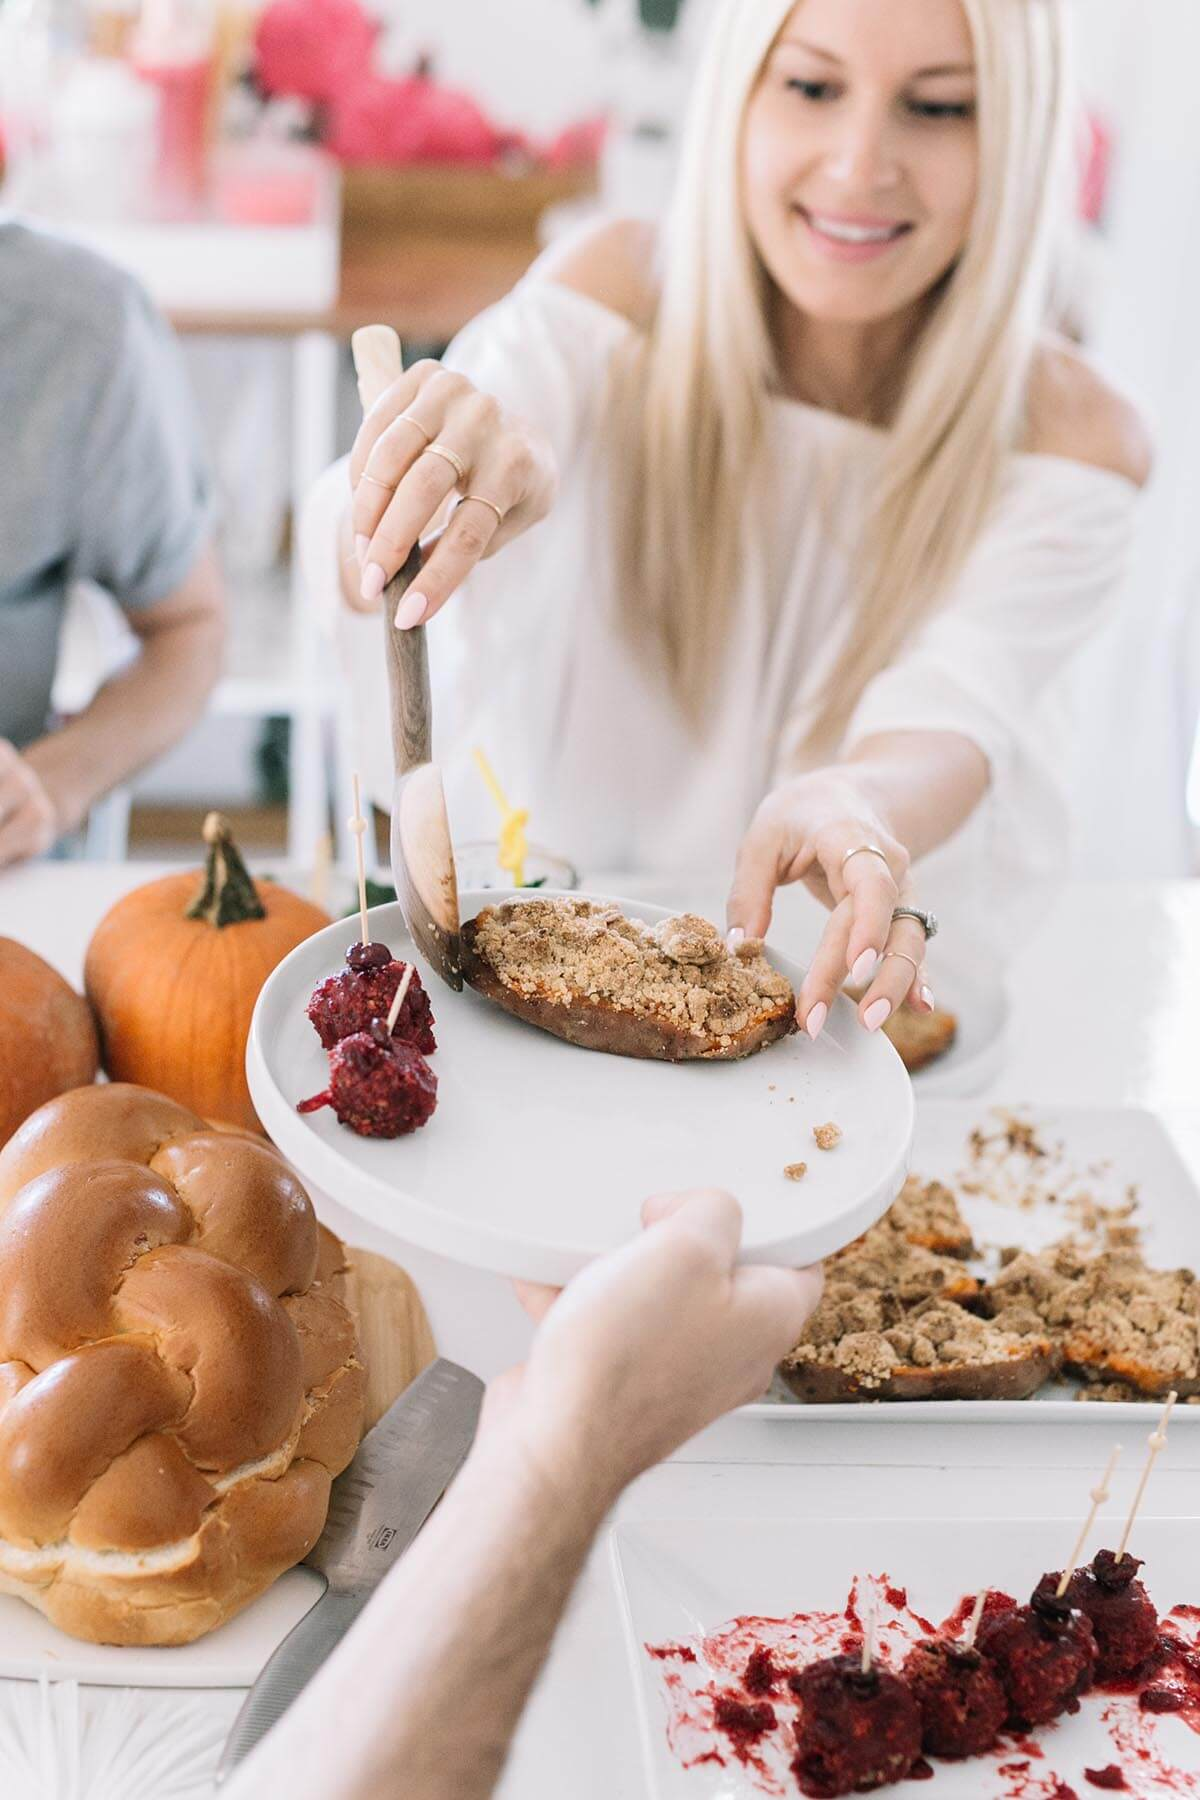 Best thanksgviging recipes for vegans